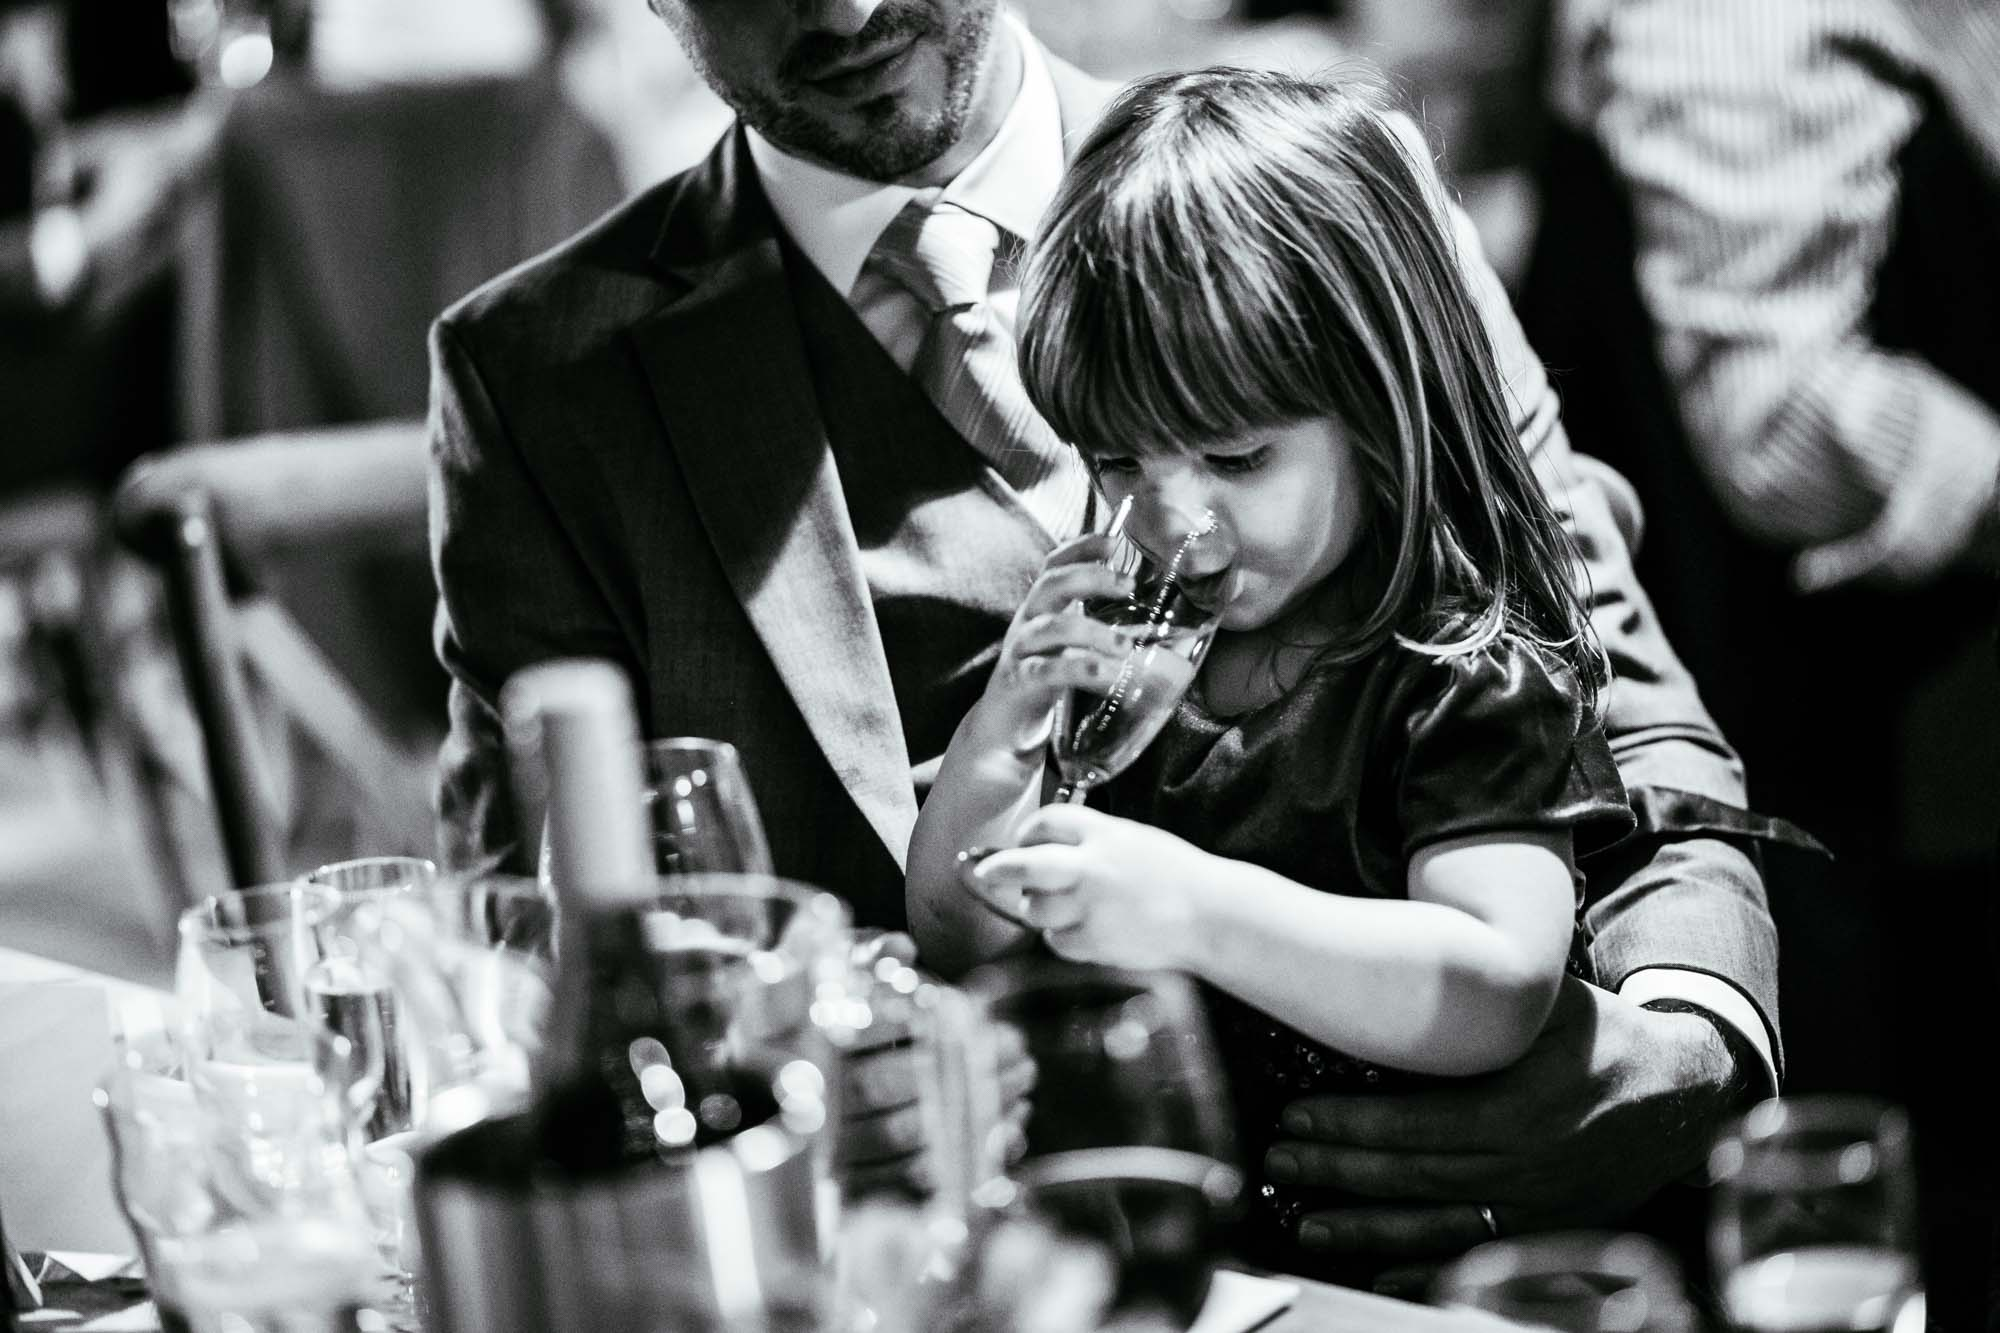 Girl drinking from champagne glass